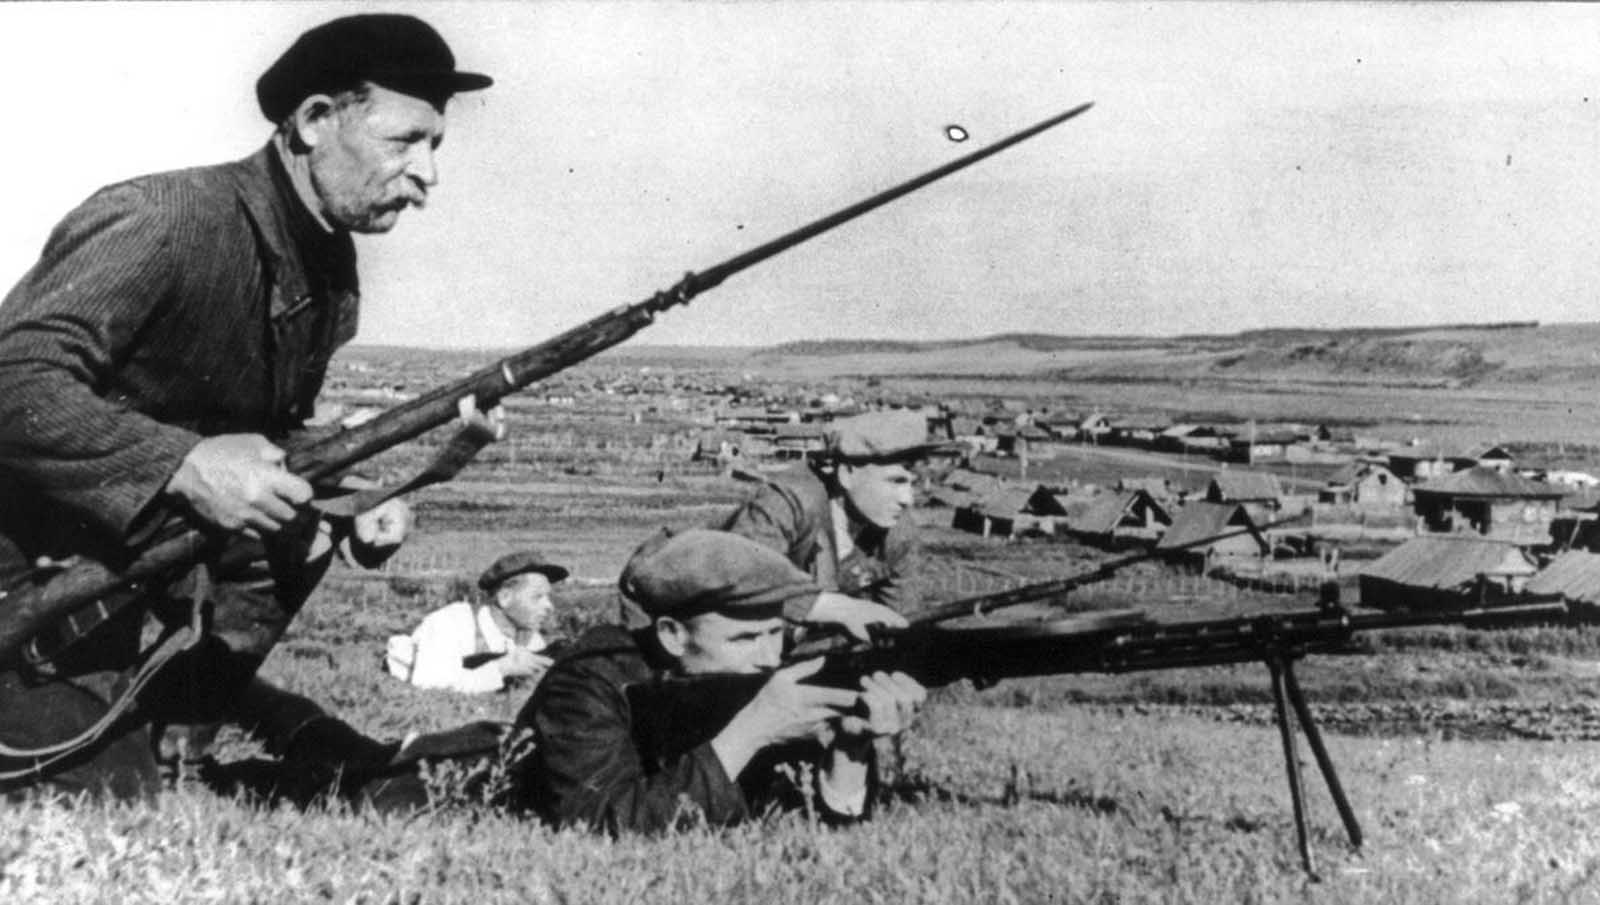 Rapidly advancing German forces encountered serious guerrilla resistance behind their front lines. Here, four guerrillas with fixed bayonets and a small machine gun are seen in action, near a small village.